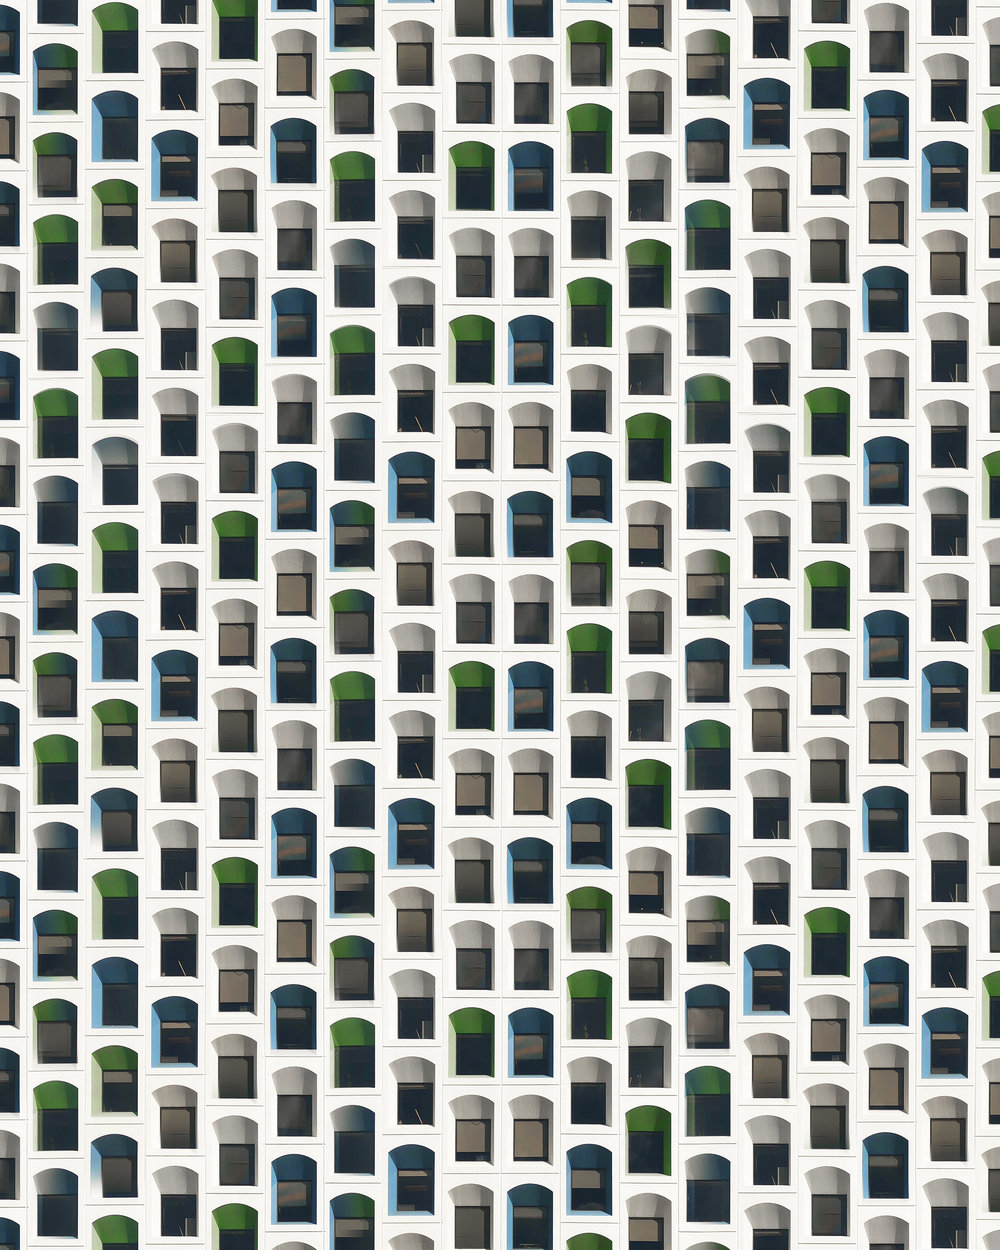 '1024 • Cellular' - 2018 Slight fluctuations are introduced into the patterns of urban facades, allowing the ripple to generate new architectures. The realism of the image's representation provokes the viewer's cognition - attempting to imagine and rationalize the structures and rooms behind the hyperreality.